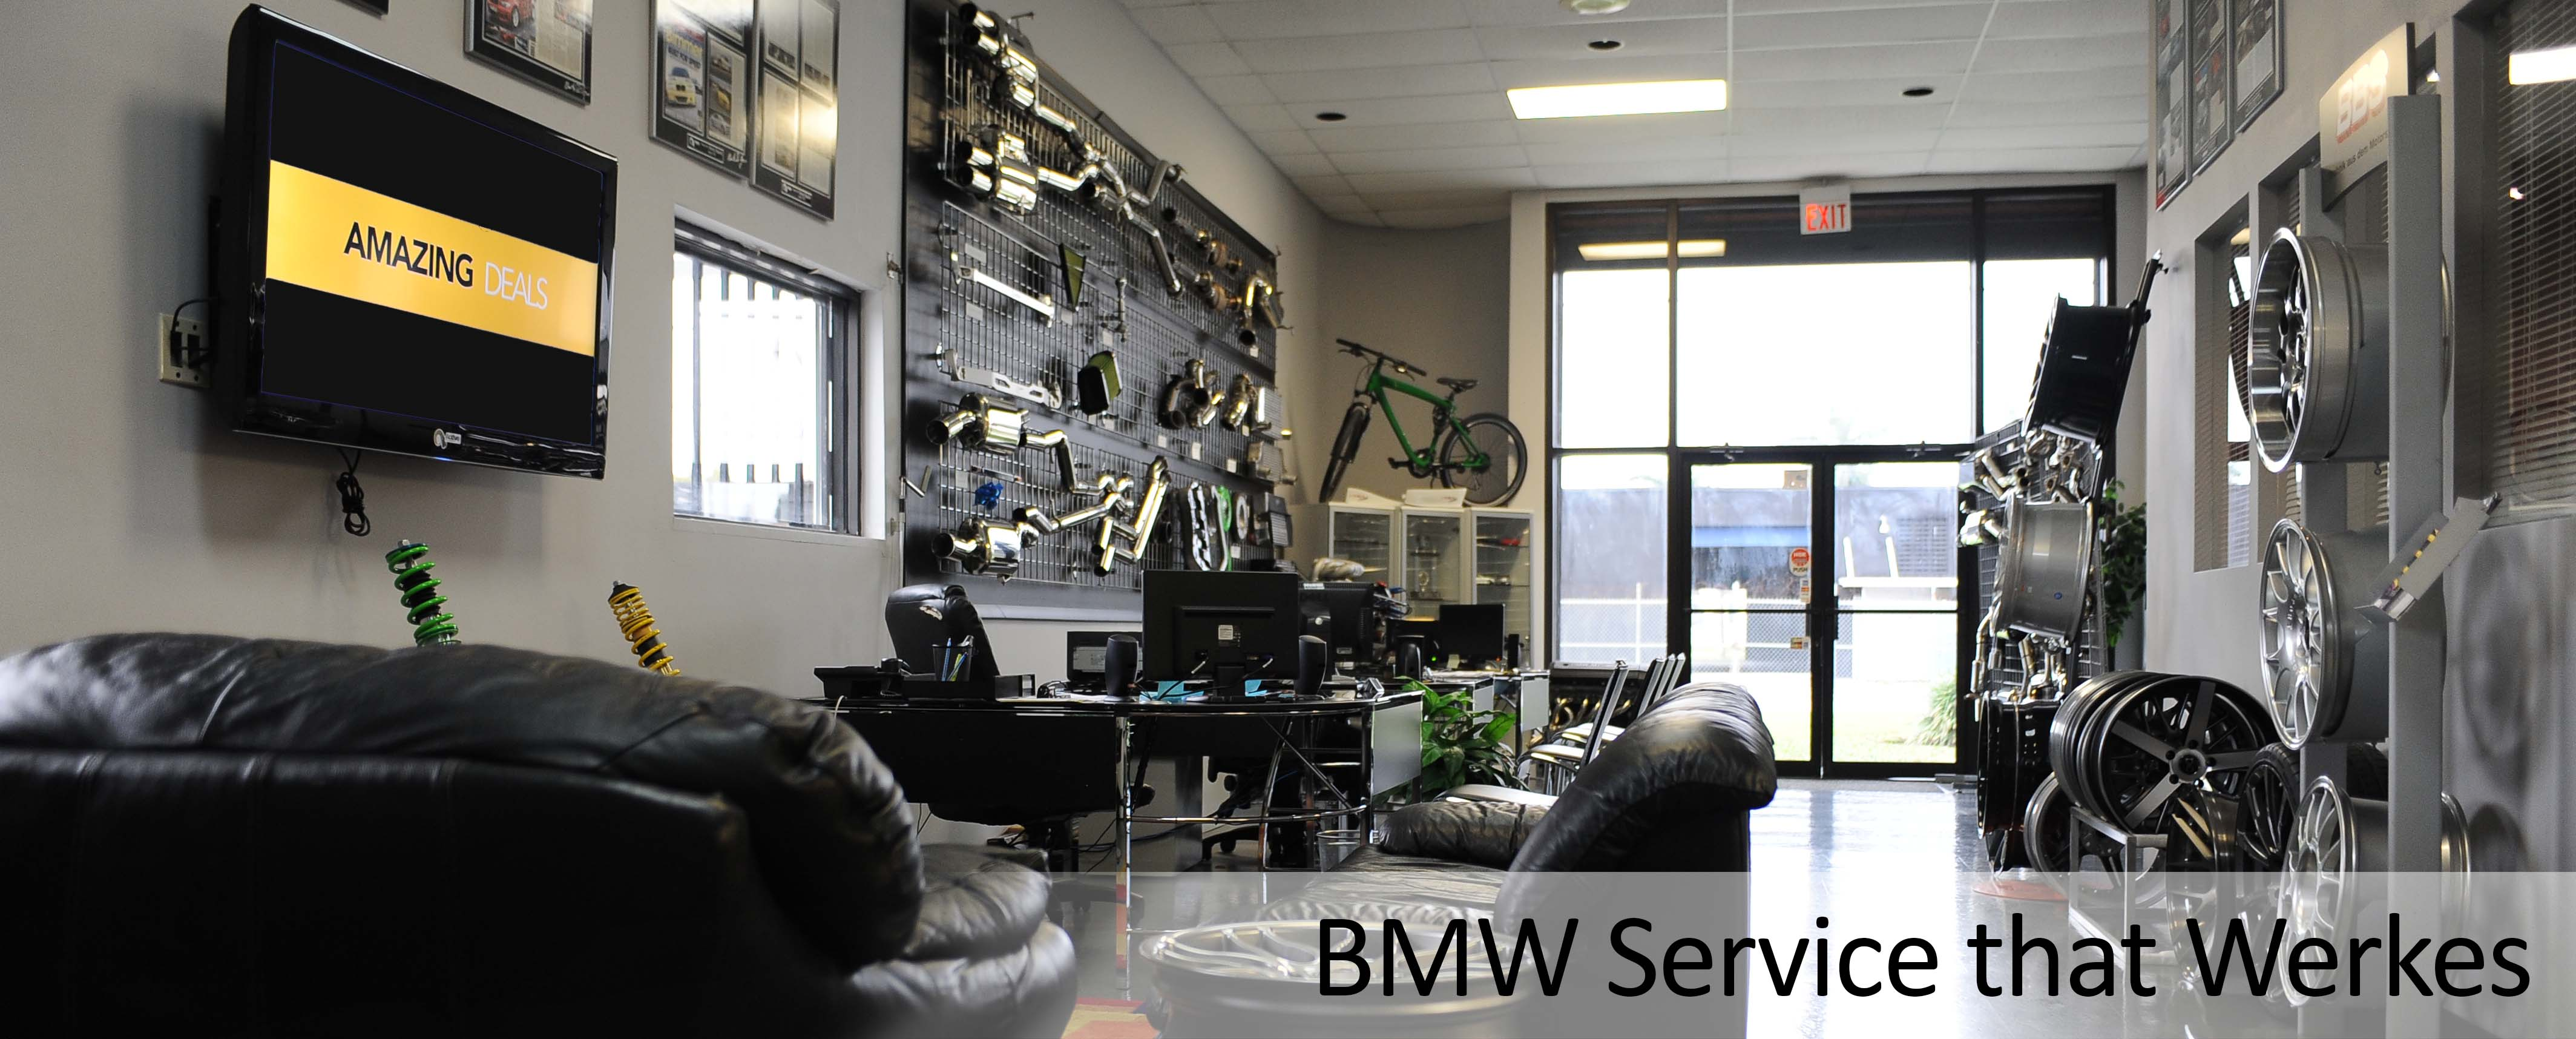 Service-Banner-Home-Page